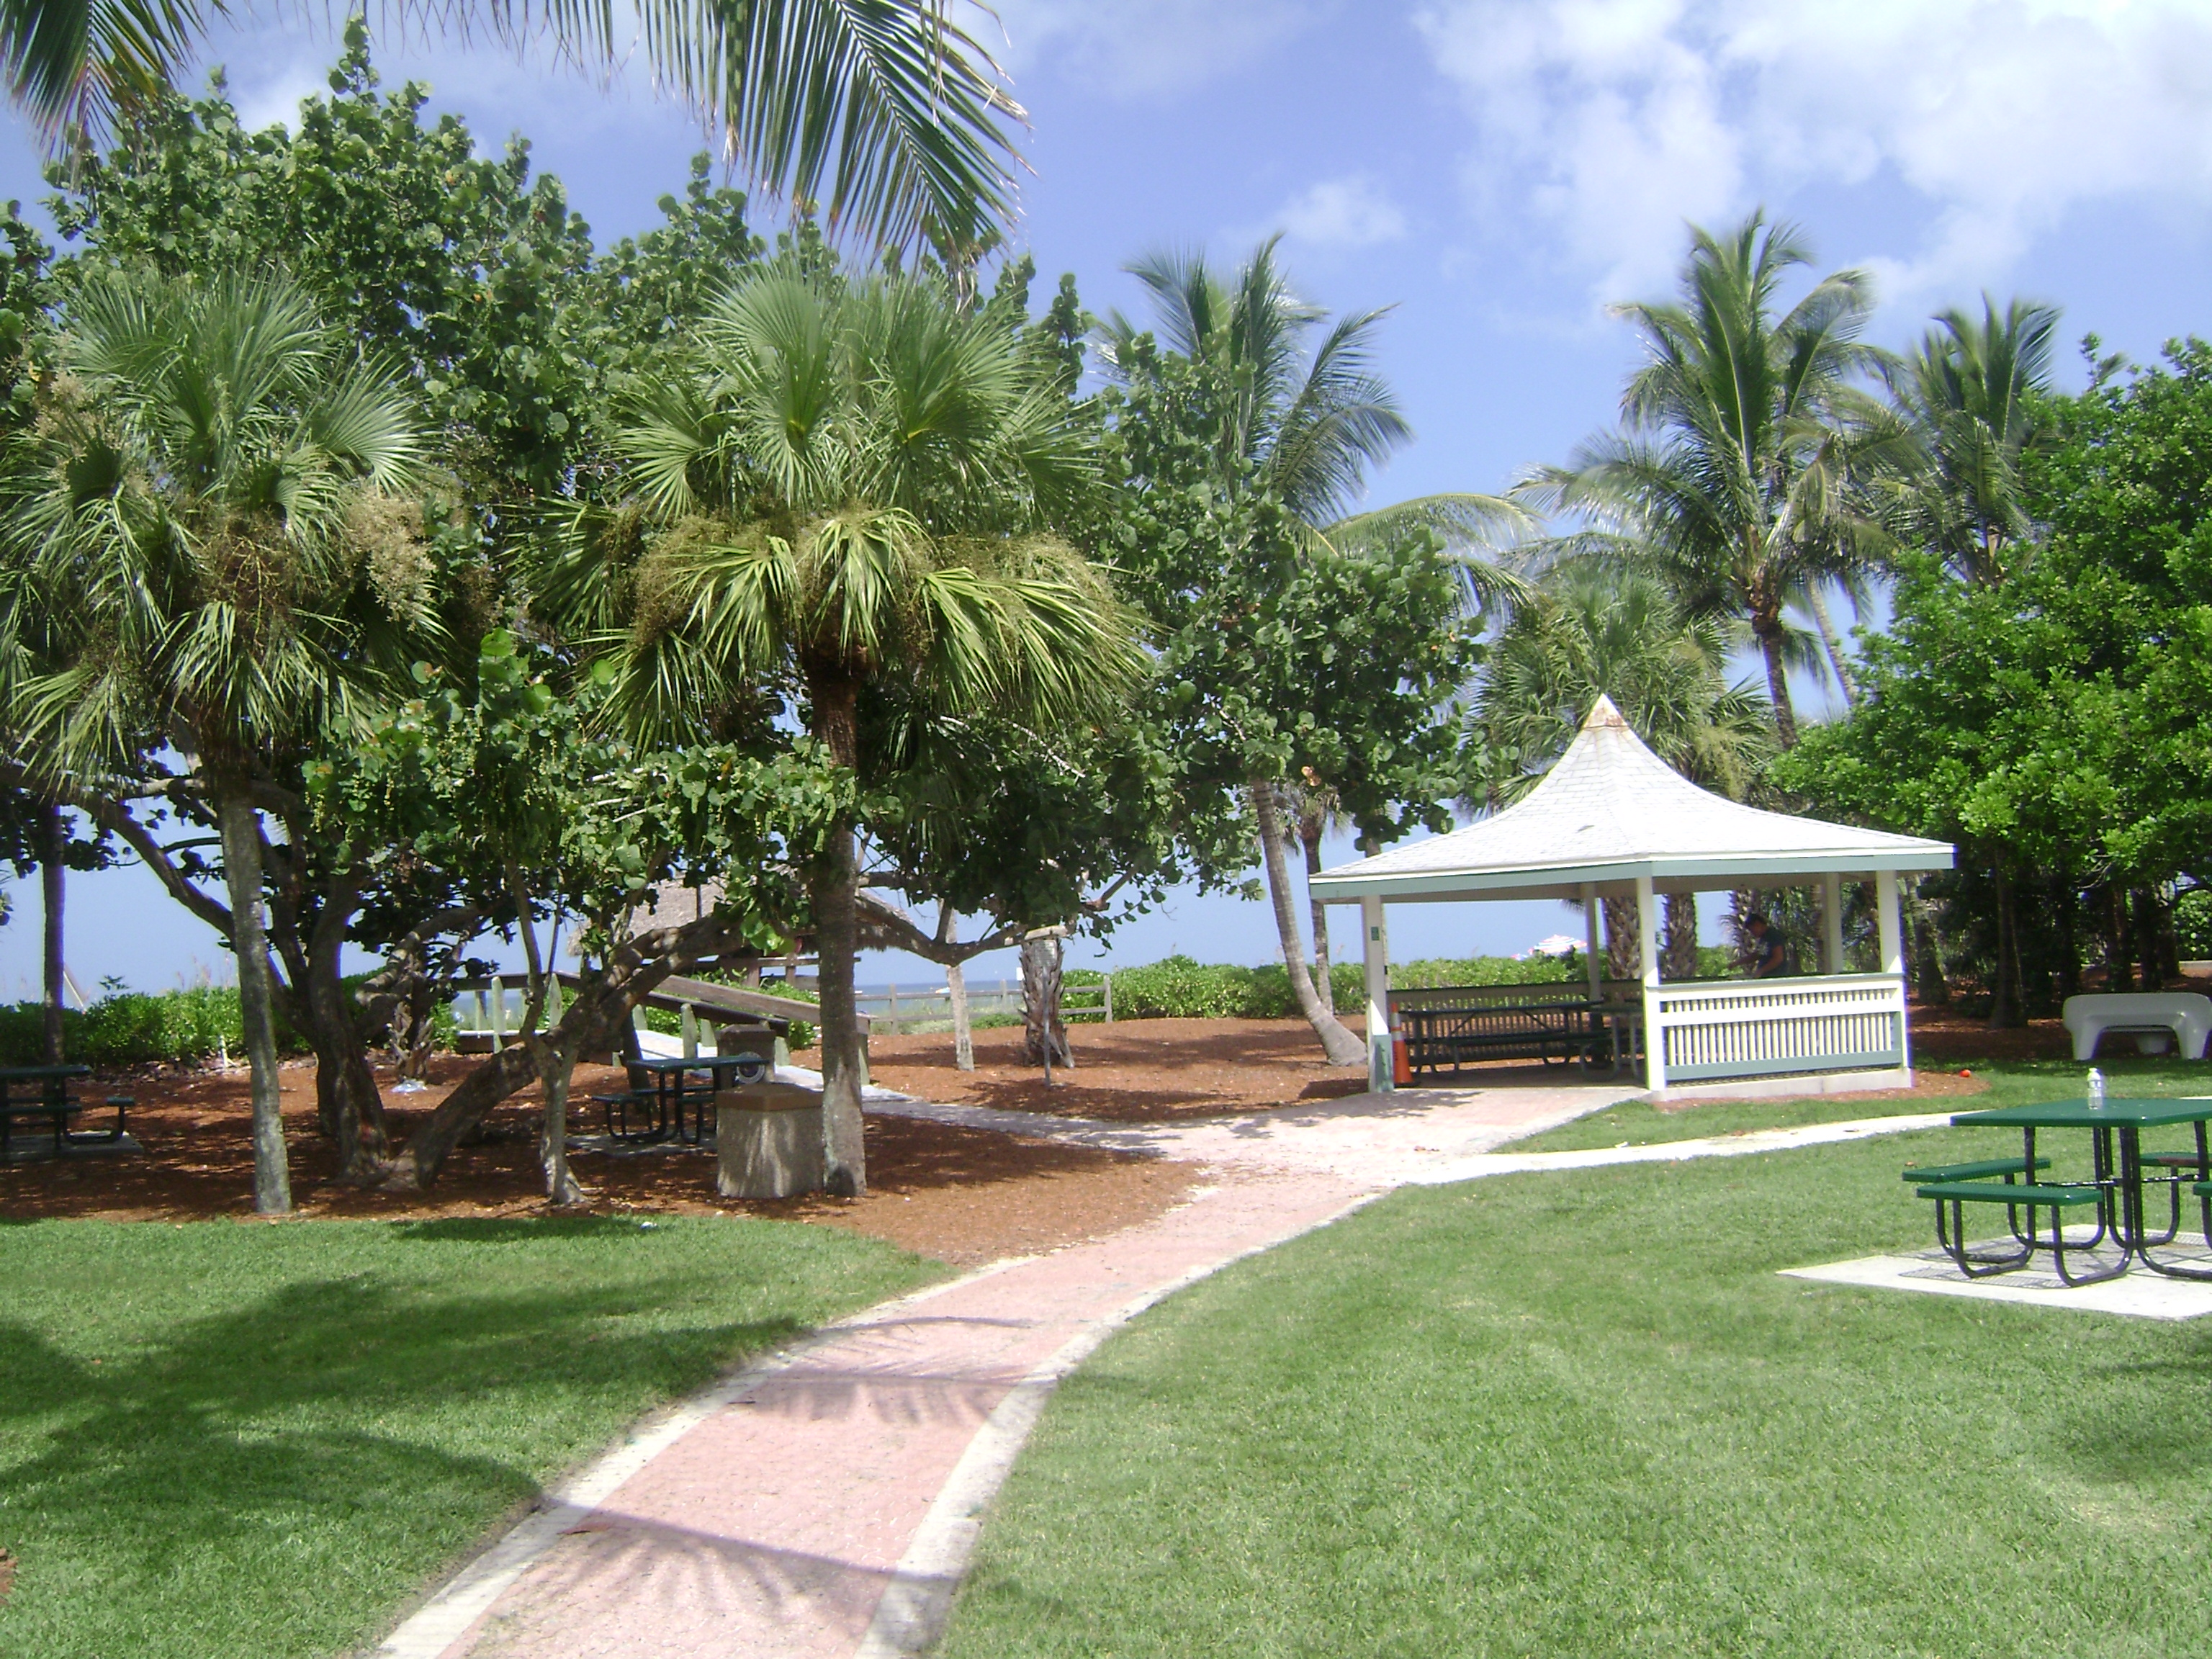 Park at Coquina Sands in Naples, Florida.